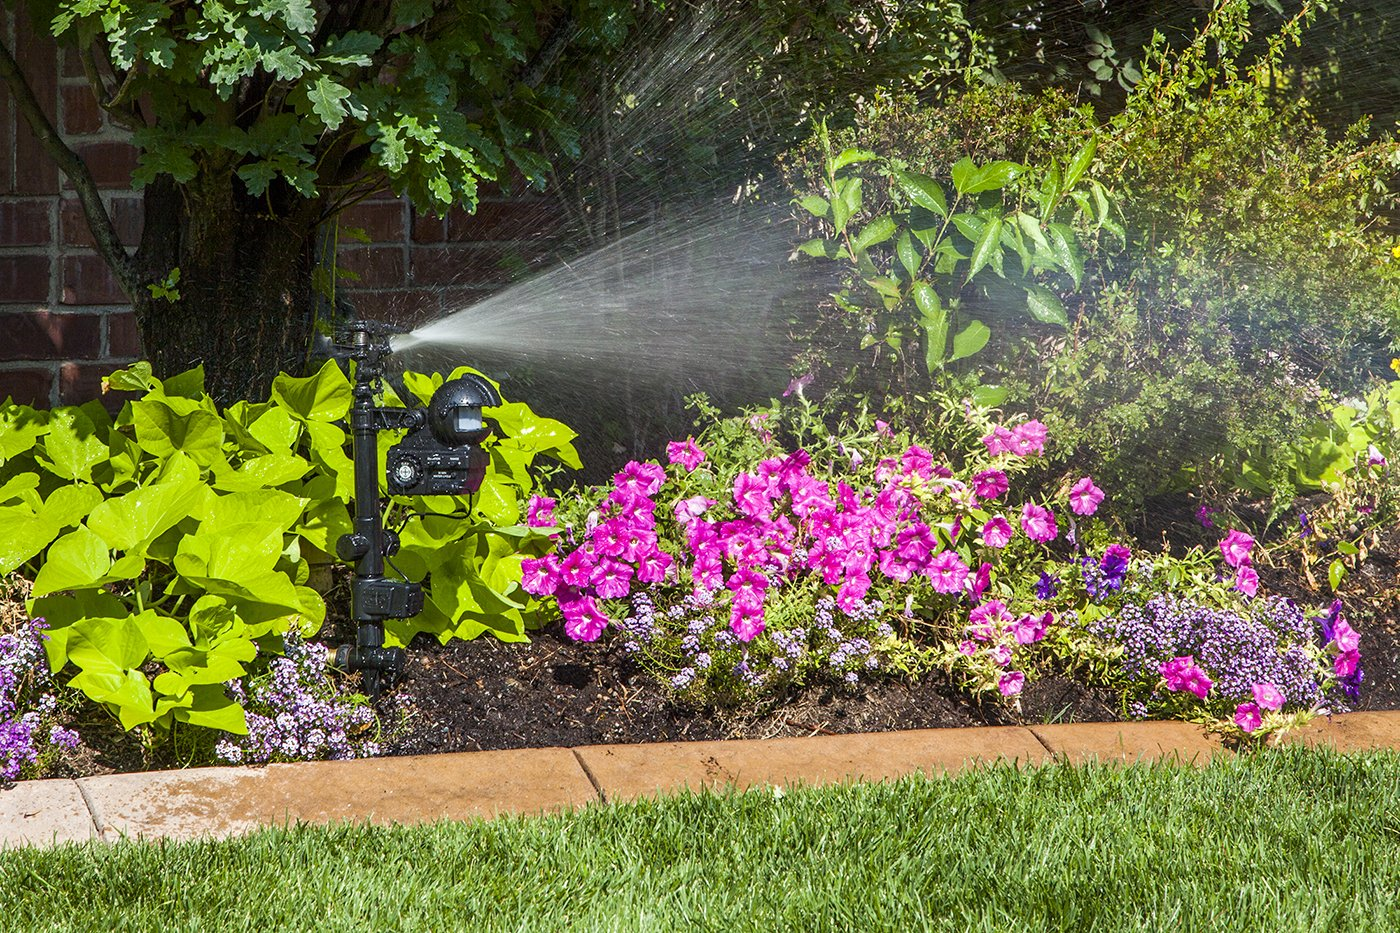 Marvelous Amazon.com : Orbit 62100 Yard Enforcer Motion Activated Sprinkler With Day  And Night Detection Modes : Lawn And Garden Sprinklers : Garden U0026 Outdoor